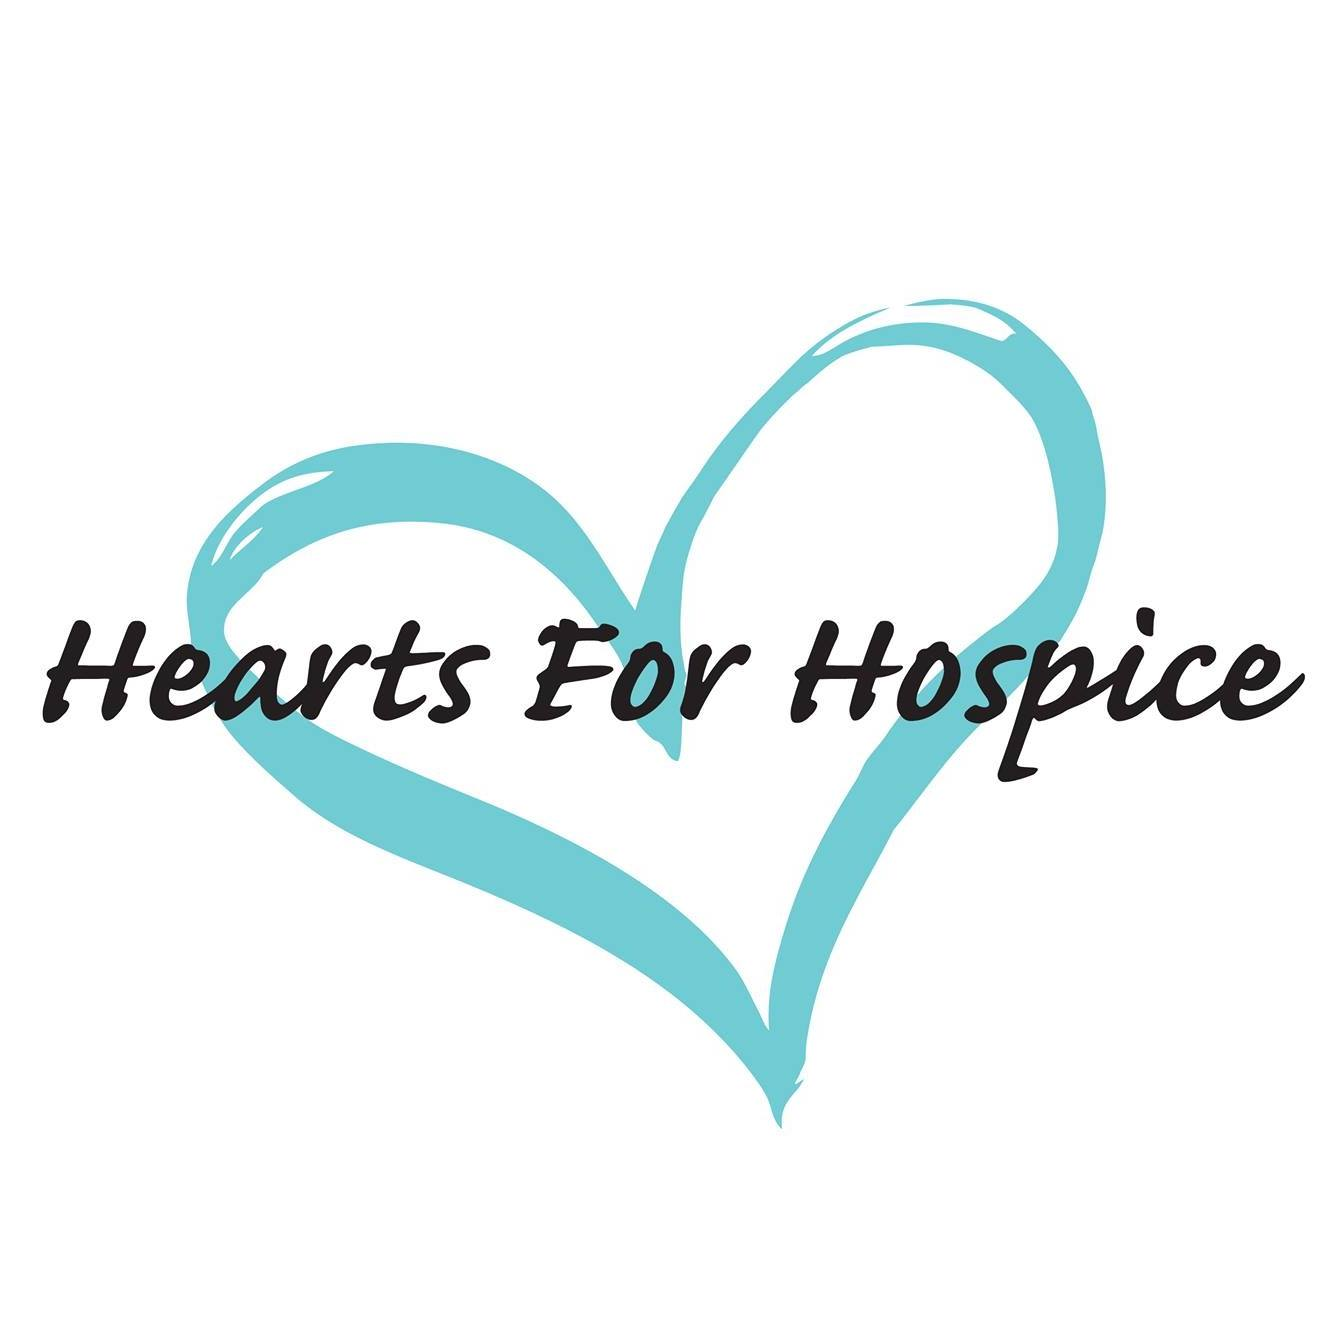 Hearts for Hospice logo